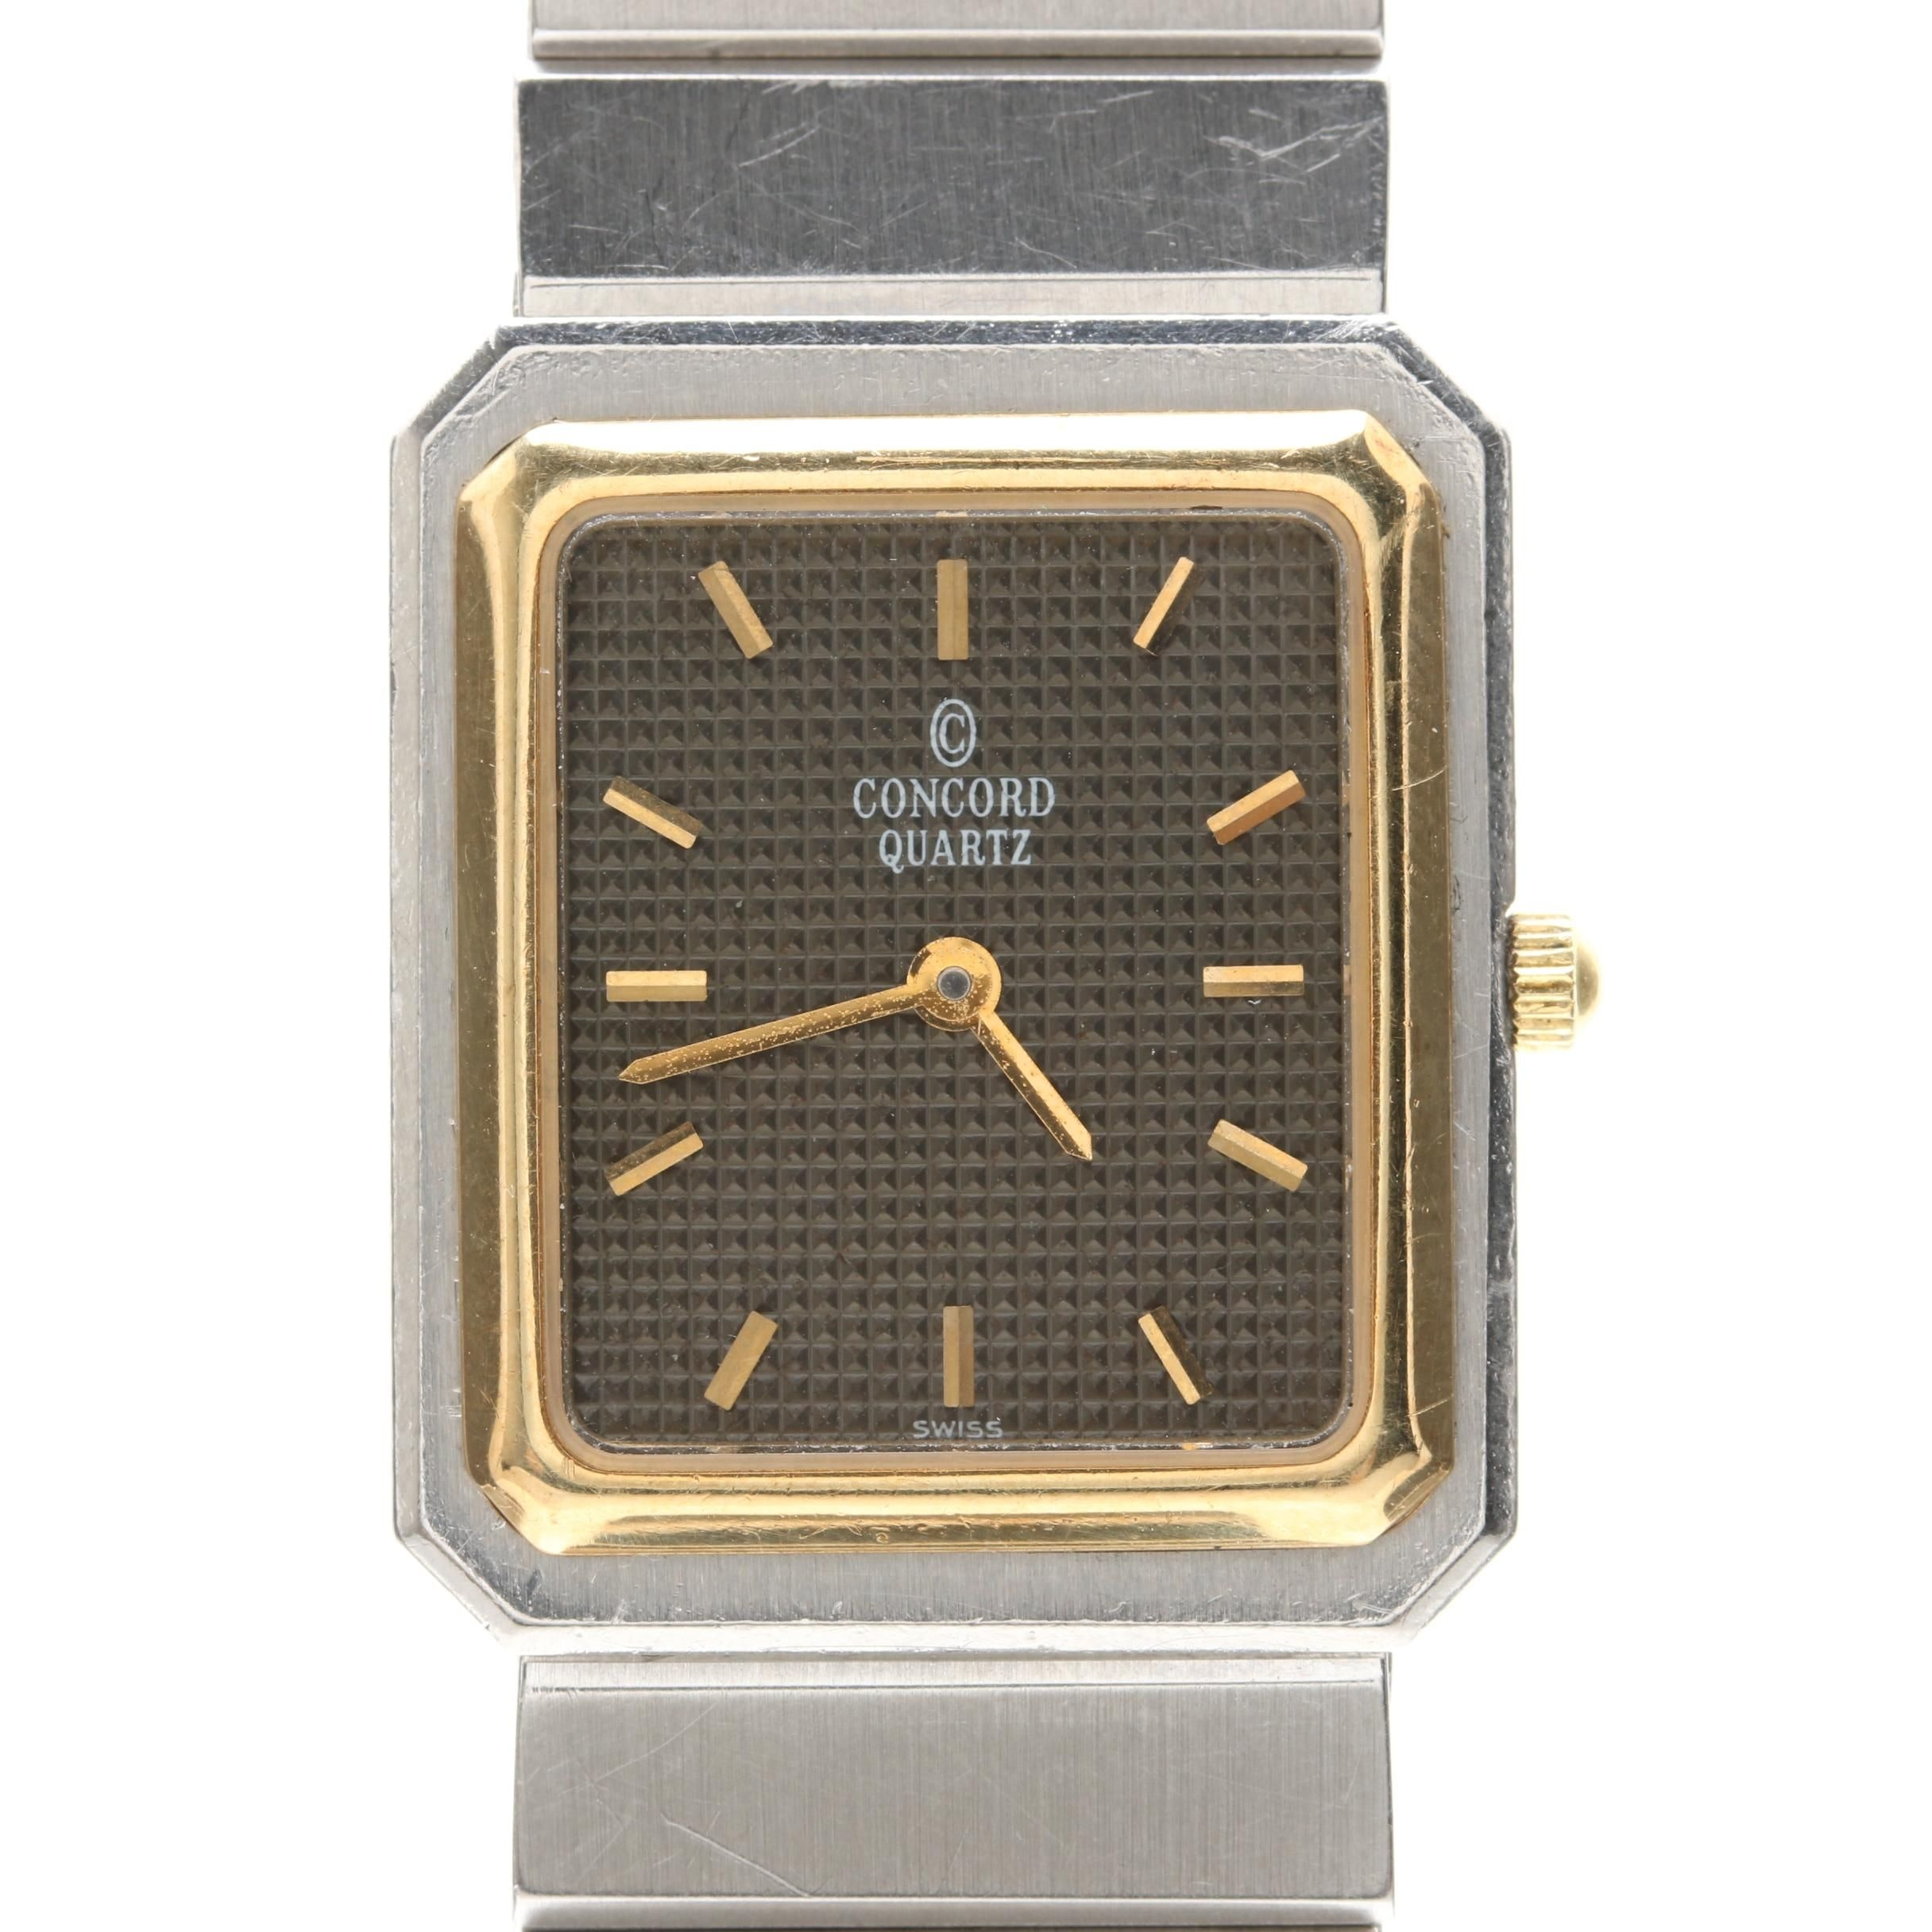 Concord Stainless Steel Wristwatch With 18K Yellow Gold Accents